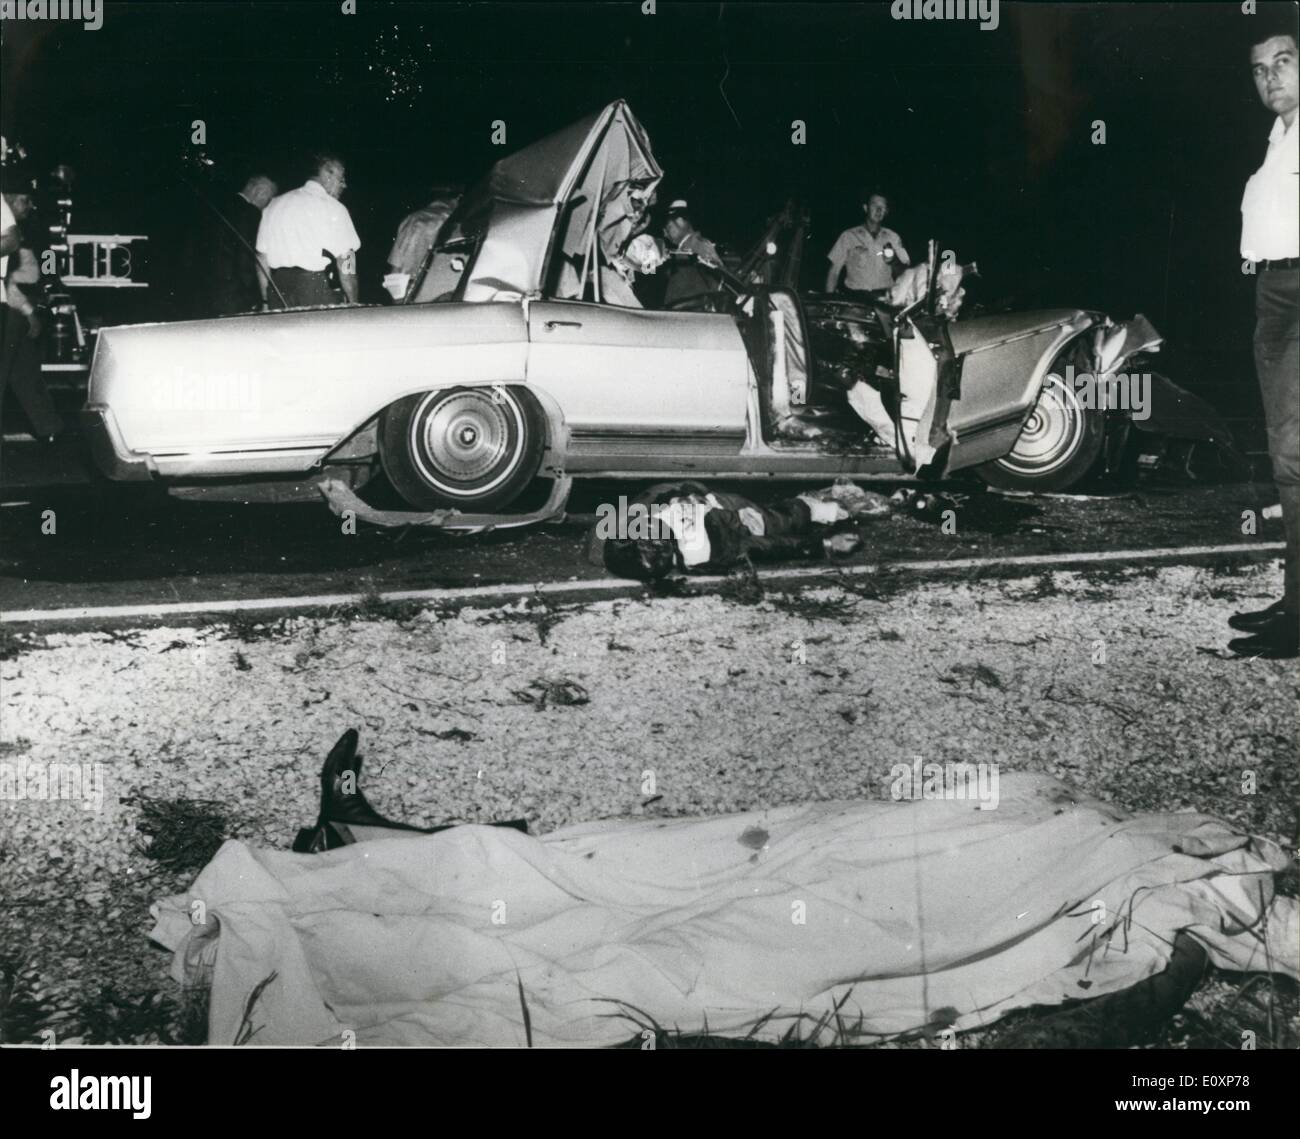 07, 1967   Jayne Mansfield Killed In Car Crash. Photo Shows The Scene After  The Crash In Which Jayne Mansfield, 33, Hollywood Actress And Cabaret  Performan ...